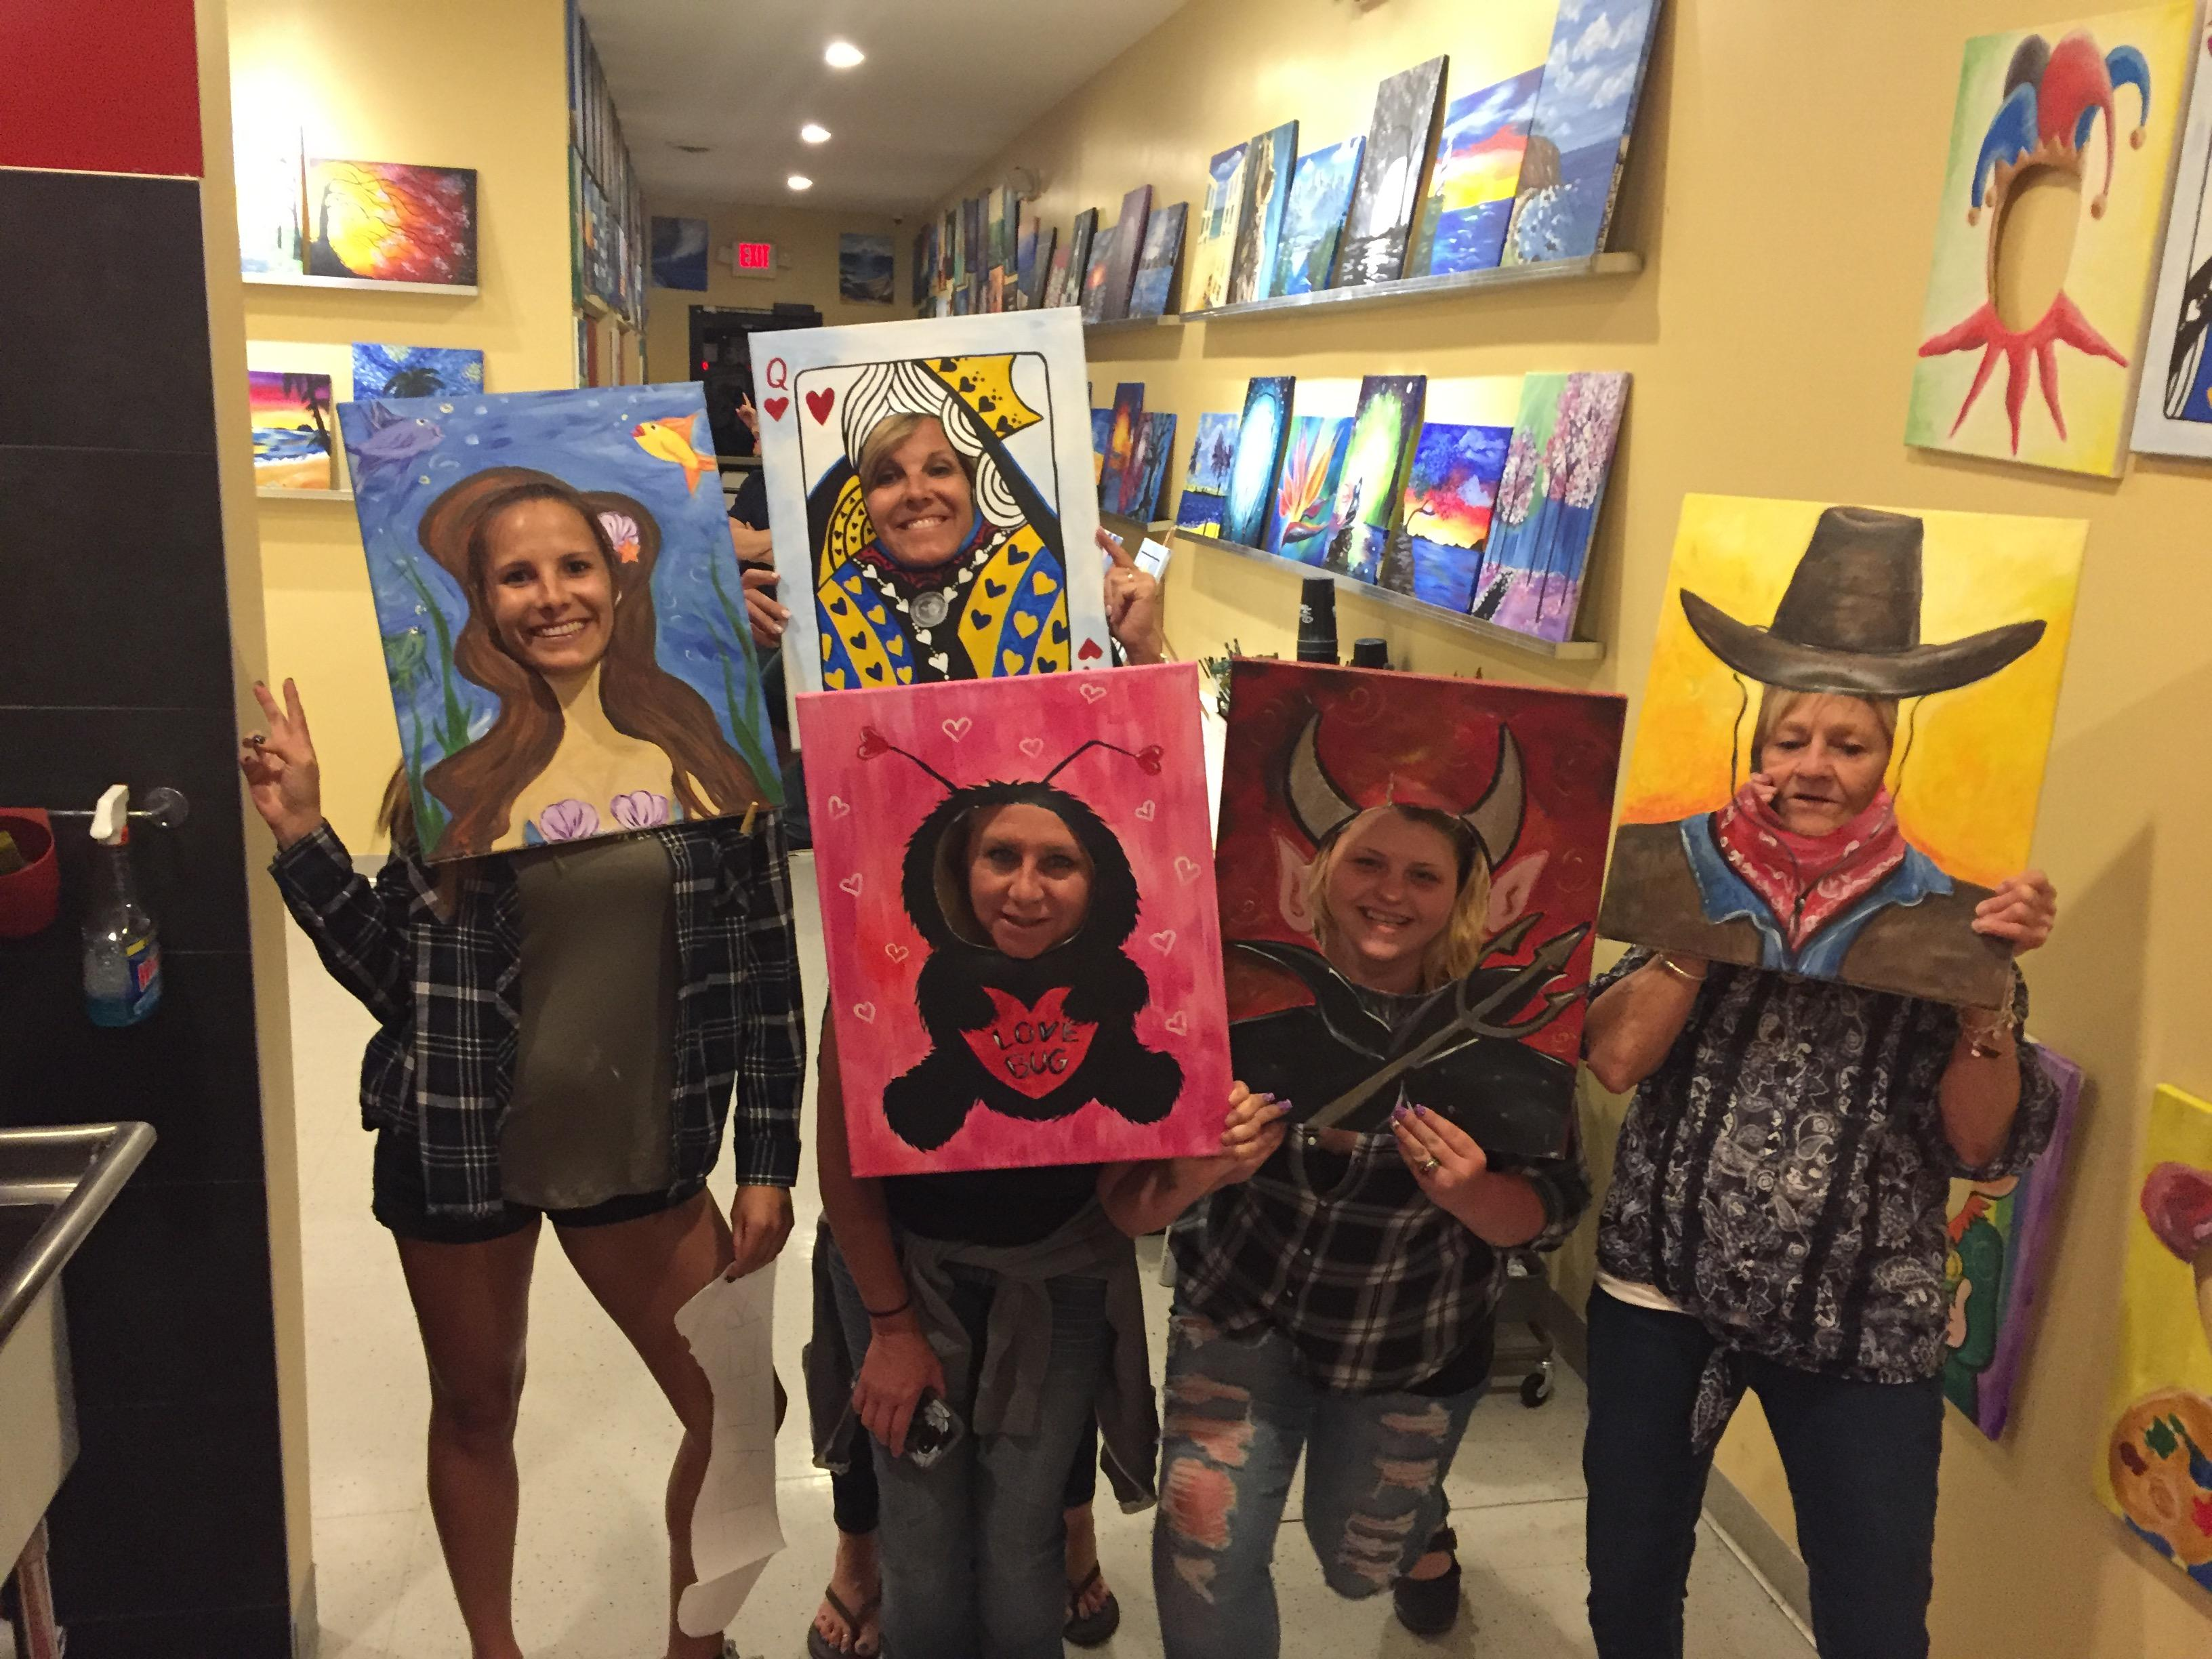 Painting with a twist coupons near me in camarillo 8coupons for Painting with a twist chicago